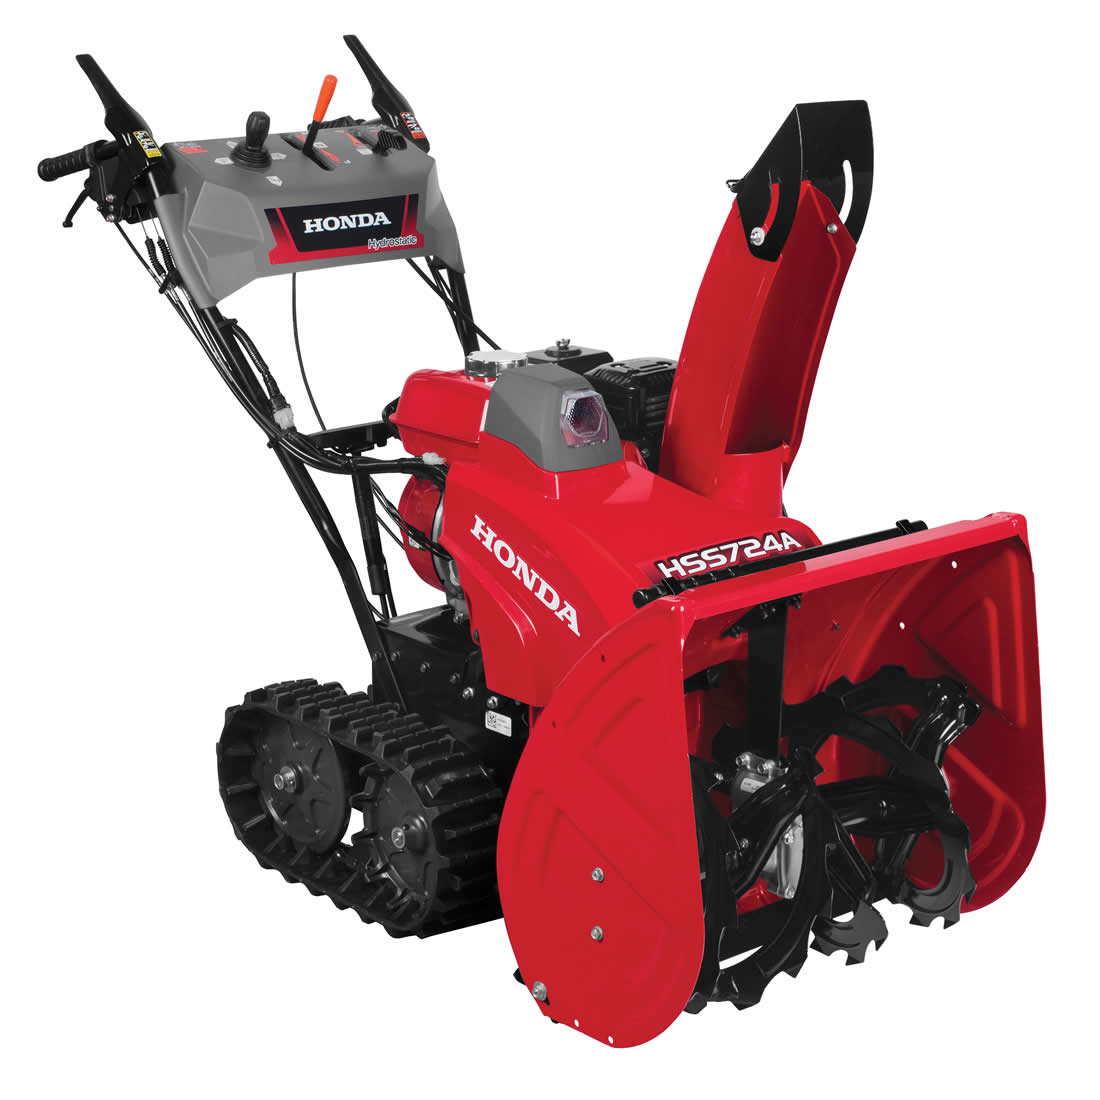 Shop Honda Snowblowers At Wright Implement